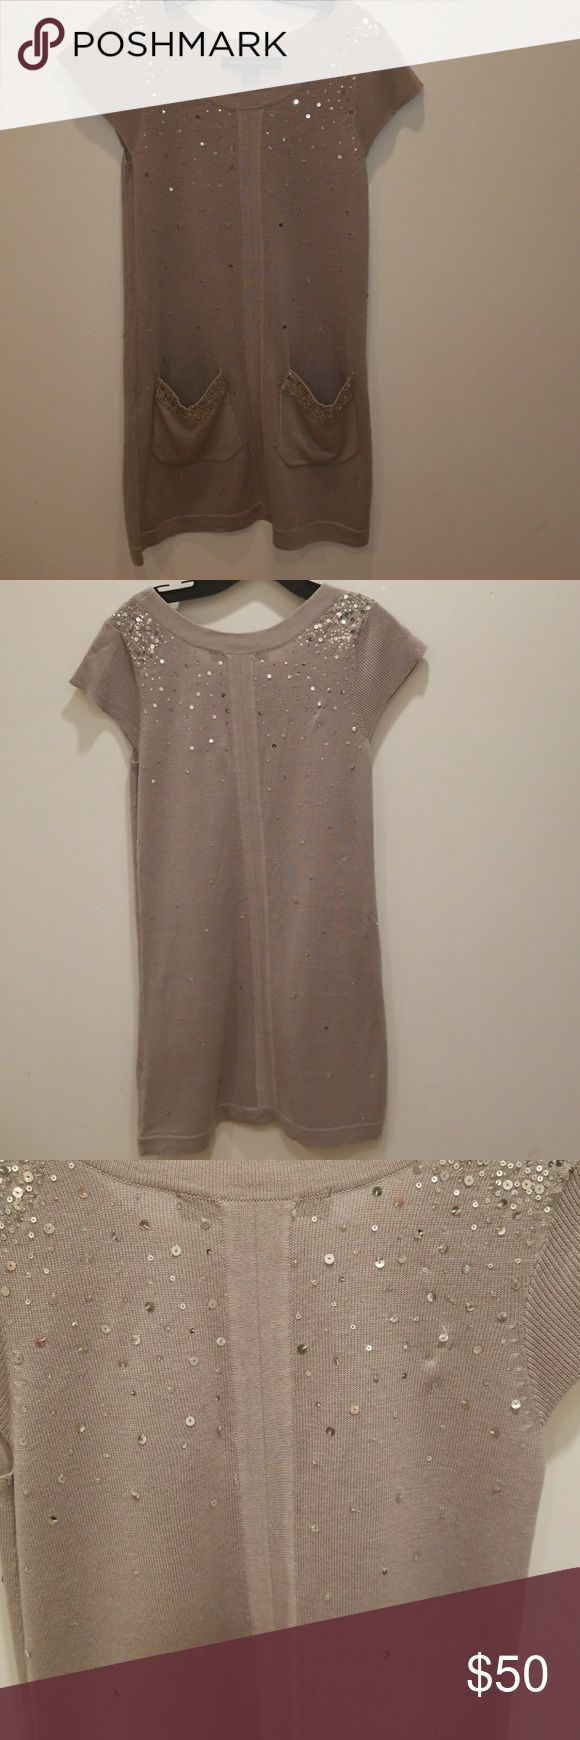 French connection sequin detail dress Fits like a dress or wear as a tunic with leggings! Gray color with silver sequin detail. Pocket detail towards bottom of garment. French Connection Dresses Mini